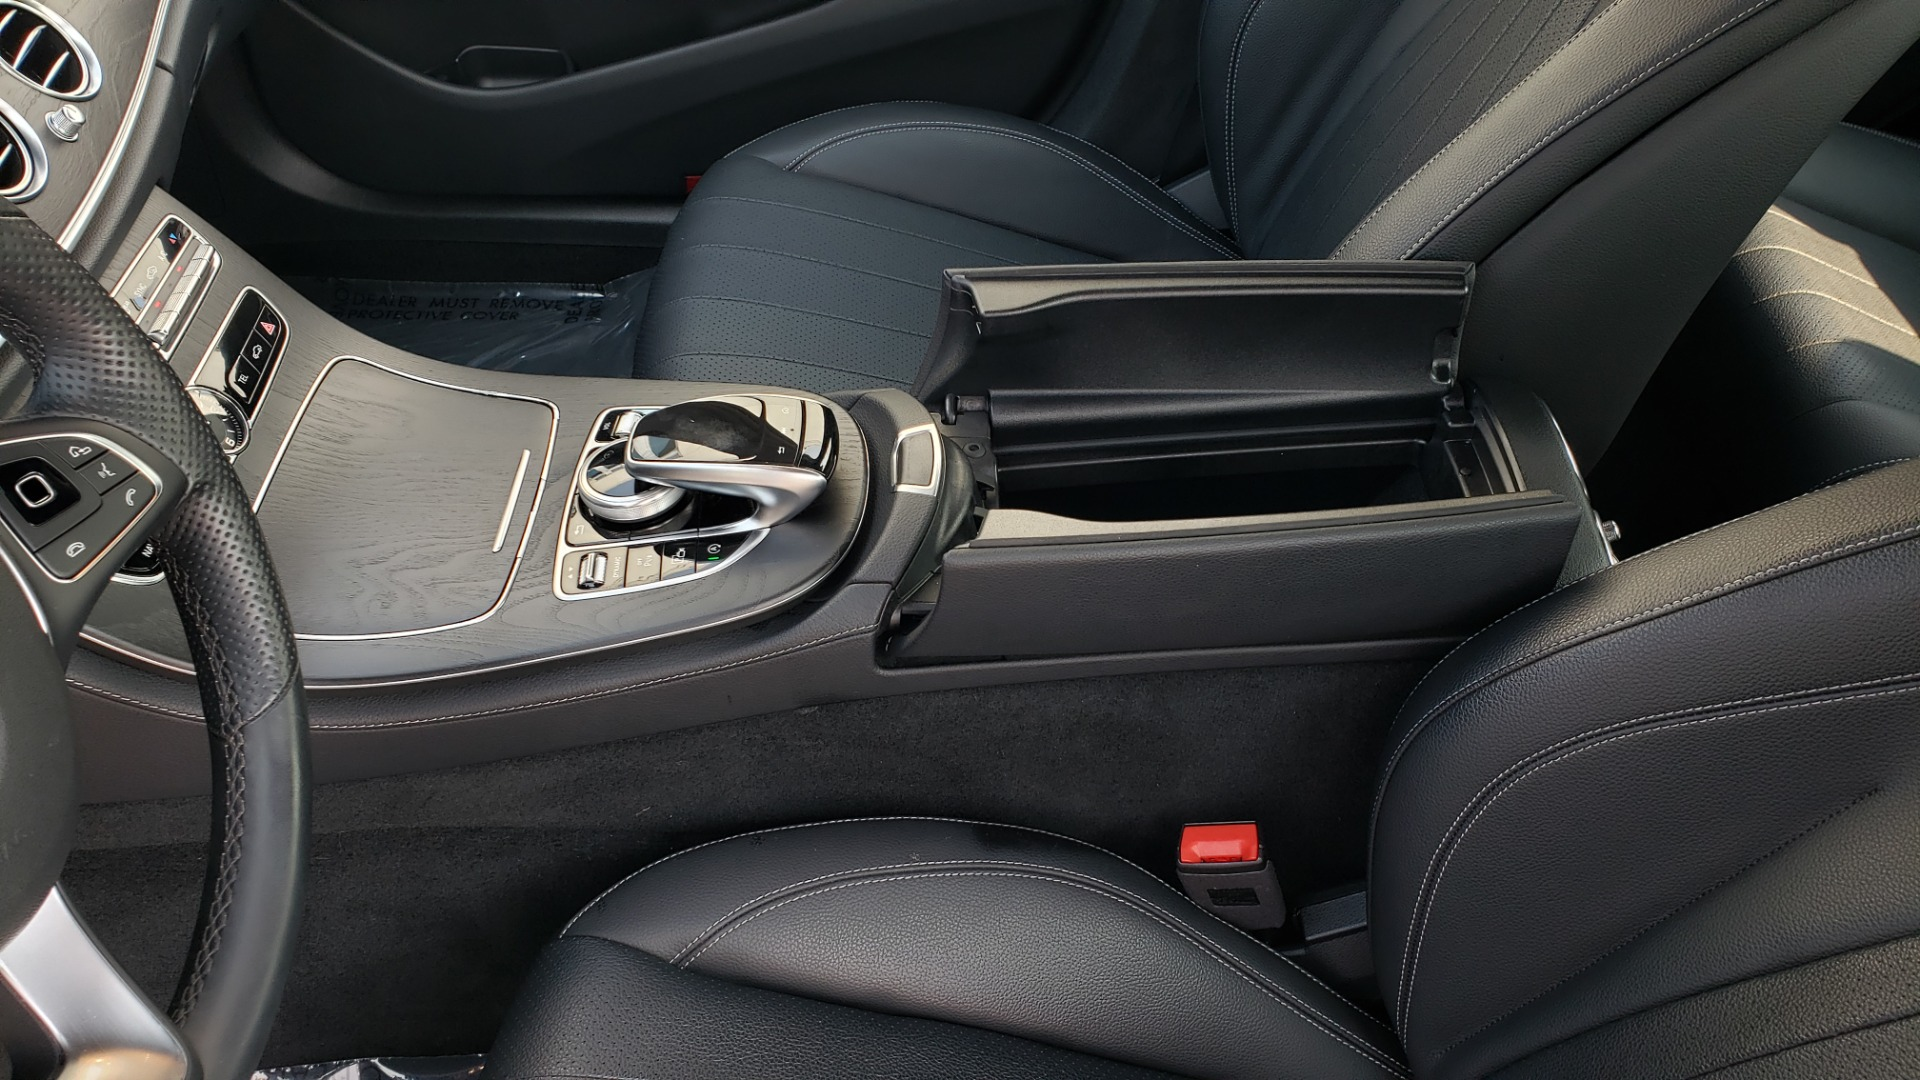 Used 2018 Mercedes-Benz E-CLASS E 300 4MATIC / PREMIUM / NAV / PANO-ROOF / BURMESTER / REARVIEW for sale $41,995 at Formula Imports in Charlotte NC 28227 52